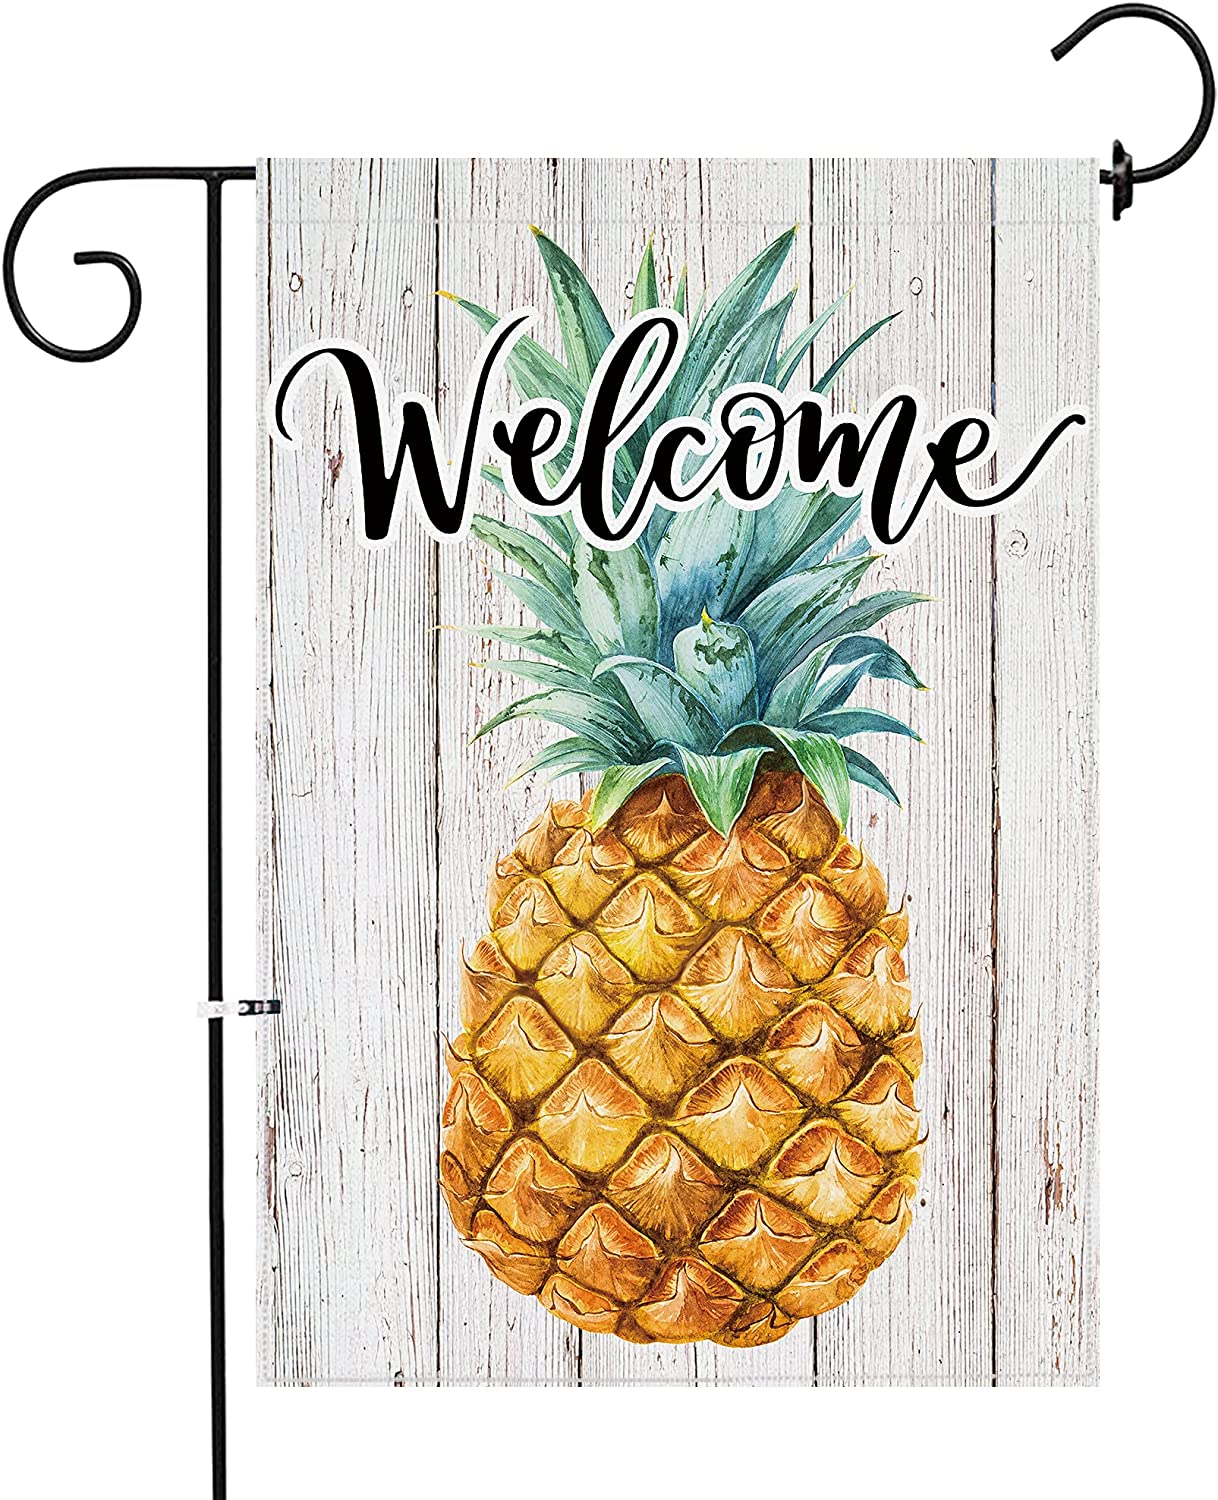 pinata Summer Garden Flag Pineapple Welcome 12x18 Double Sided, Small Yard Flags Beach House Seasonal Outdoor Decorative Burlap Vertical Sign Holiday Wood Grain Decoration for Home Lawn Outside Banner